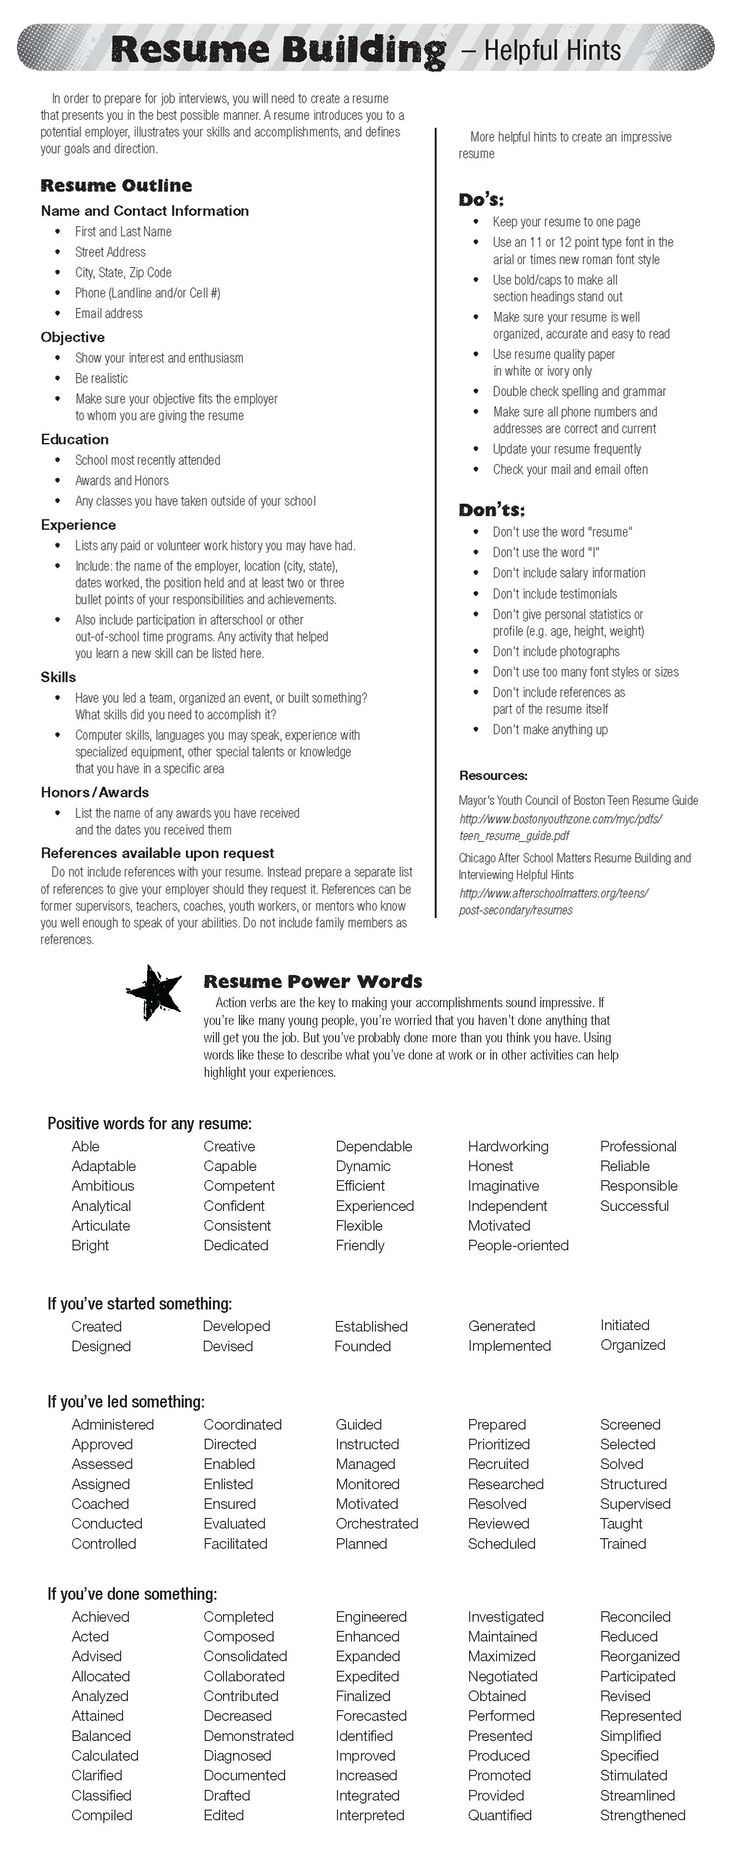 Opposenewapstandardsus  Pleasant  Ideas About Resume On Pinterest  Cv Format Resume Cv And  With Handsome  Ideas About Resume On Pinterest  Cv Format Resume Cv And Resume Templates With Beauteous Project Management Resume Also Lpn Resume In Addition Create Resume Online And Resume Cover Page As Well As General Resume Objective Additionally Student Resume Examples From Pinterestcom With Opposenewapstandardsus  Handsome  Ideas About Resume On Pinterest  Cv Format Resume Cv And  With Beauteous  Ideas About Resume On Pinterest  Cv Format Resume Cv And Resume Templates And Pleasant Project Management Resume Also Lpn Resume In Addition Create Resume Online From Pinterestcom